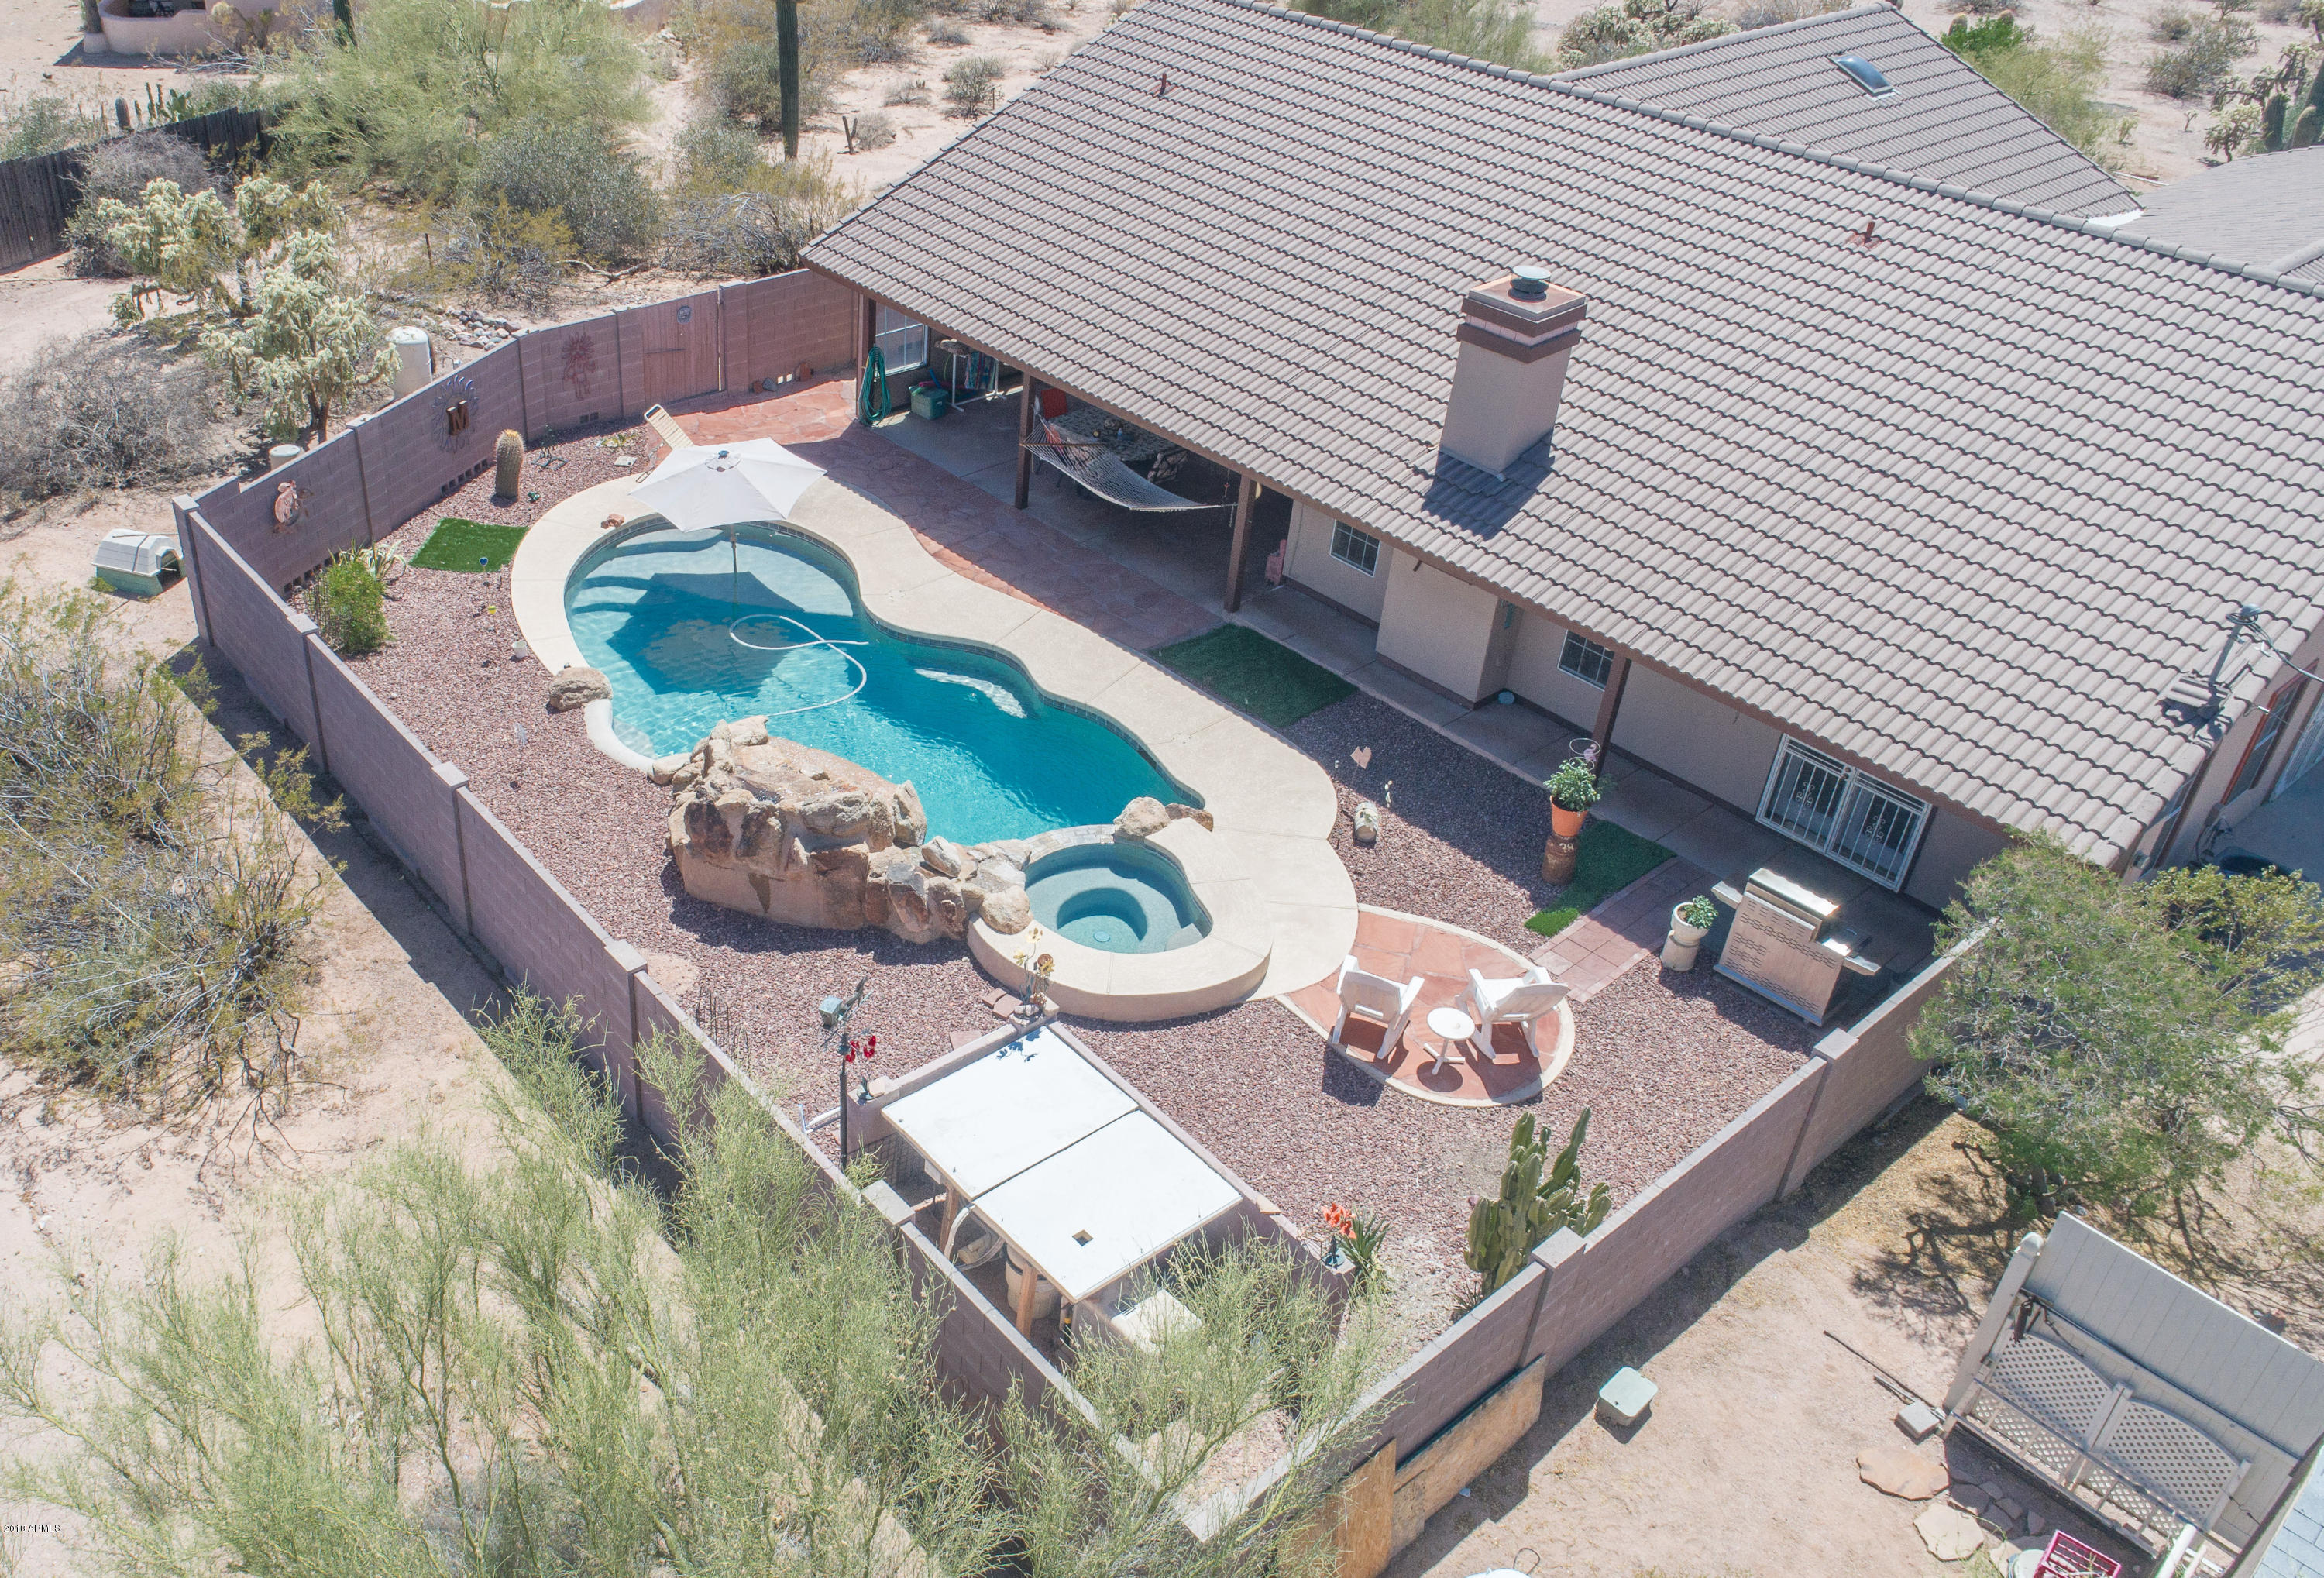 MLS 5769442 85 E KANIKSU Street, Apache Junction, AZ 85119 Apache Junction AZ Private Pool